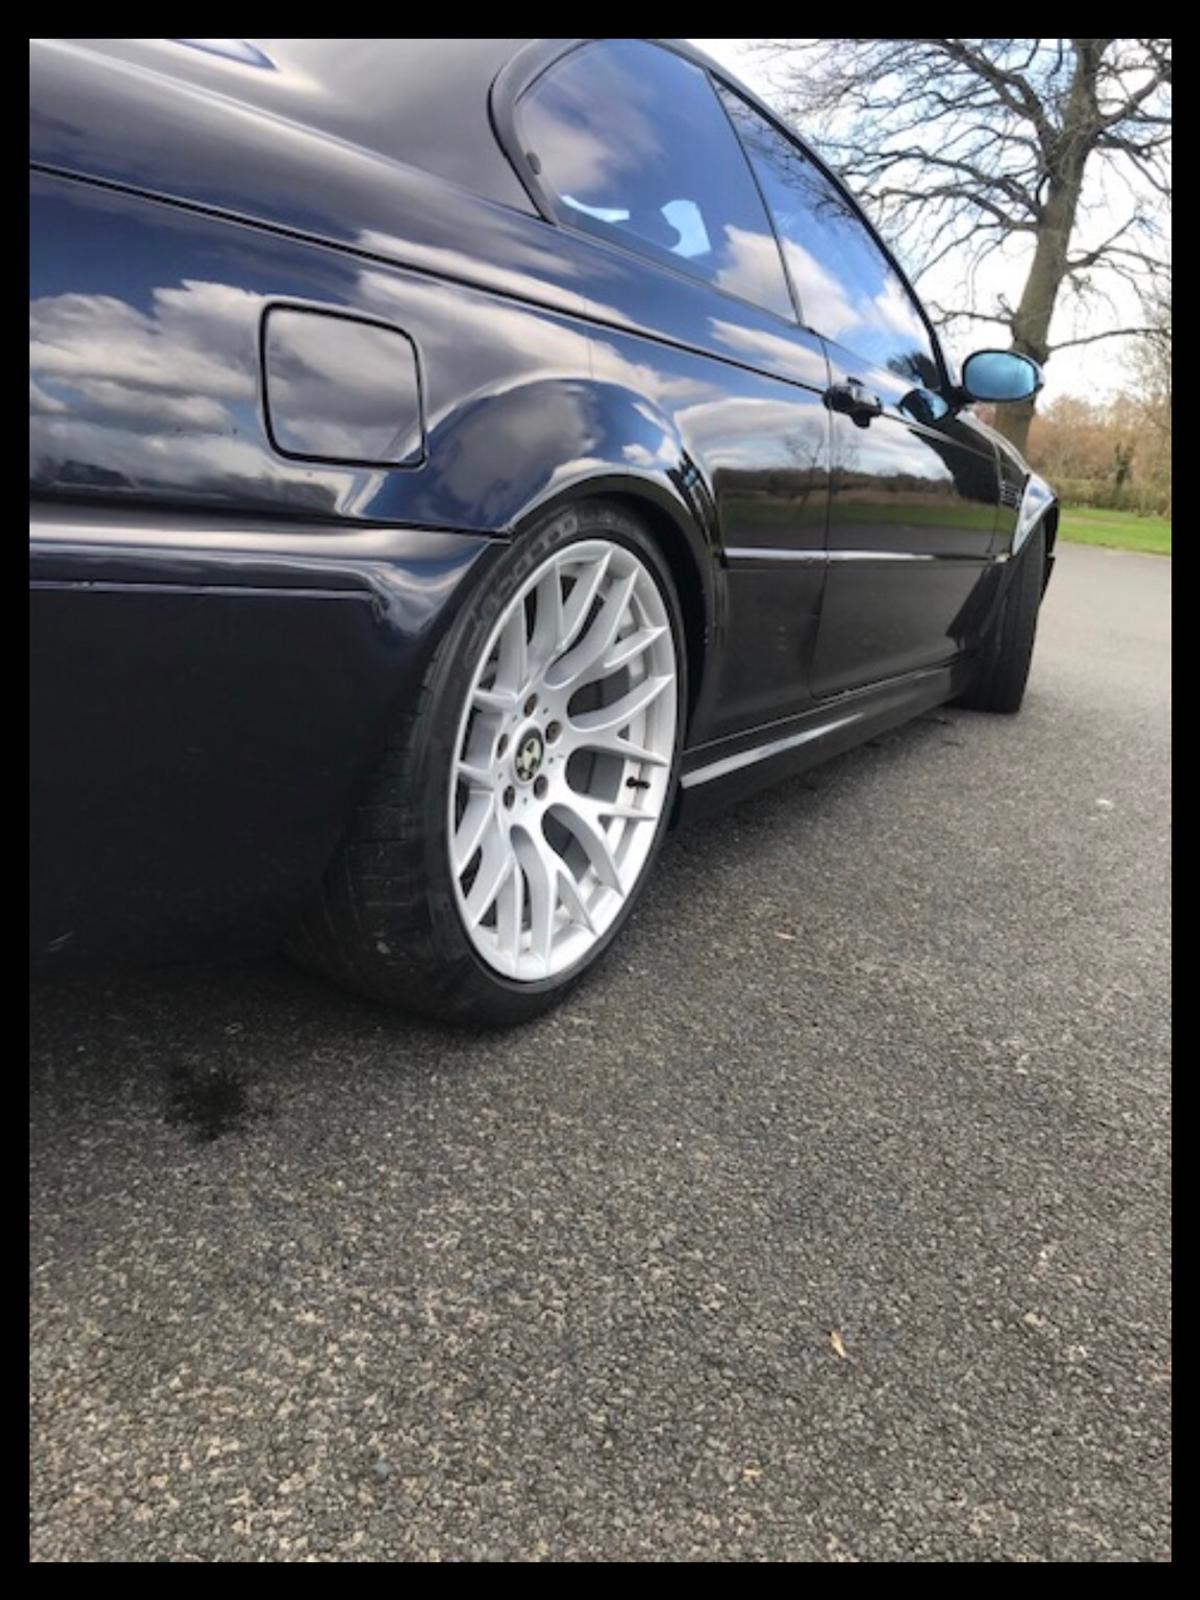 E46 Bmw M3 8295 In Donnington And Muxton For 8 295 00 For Sale Shpock